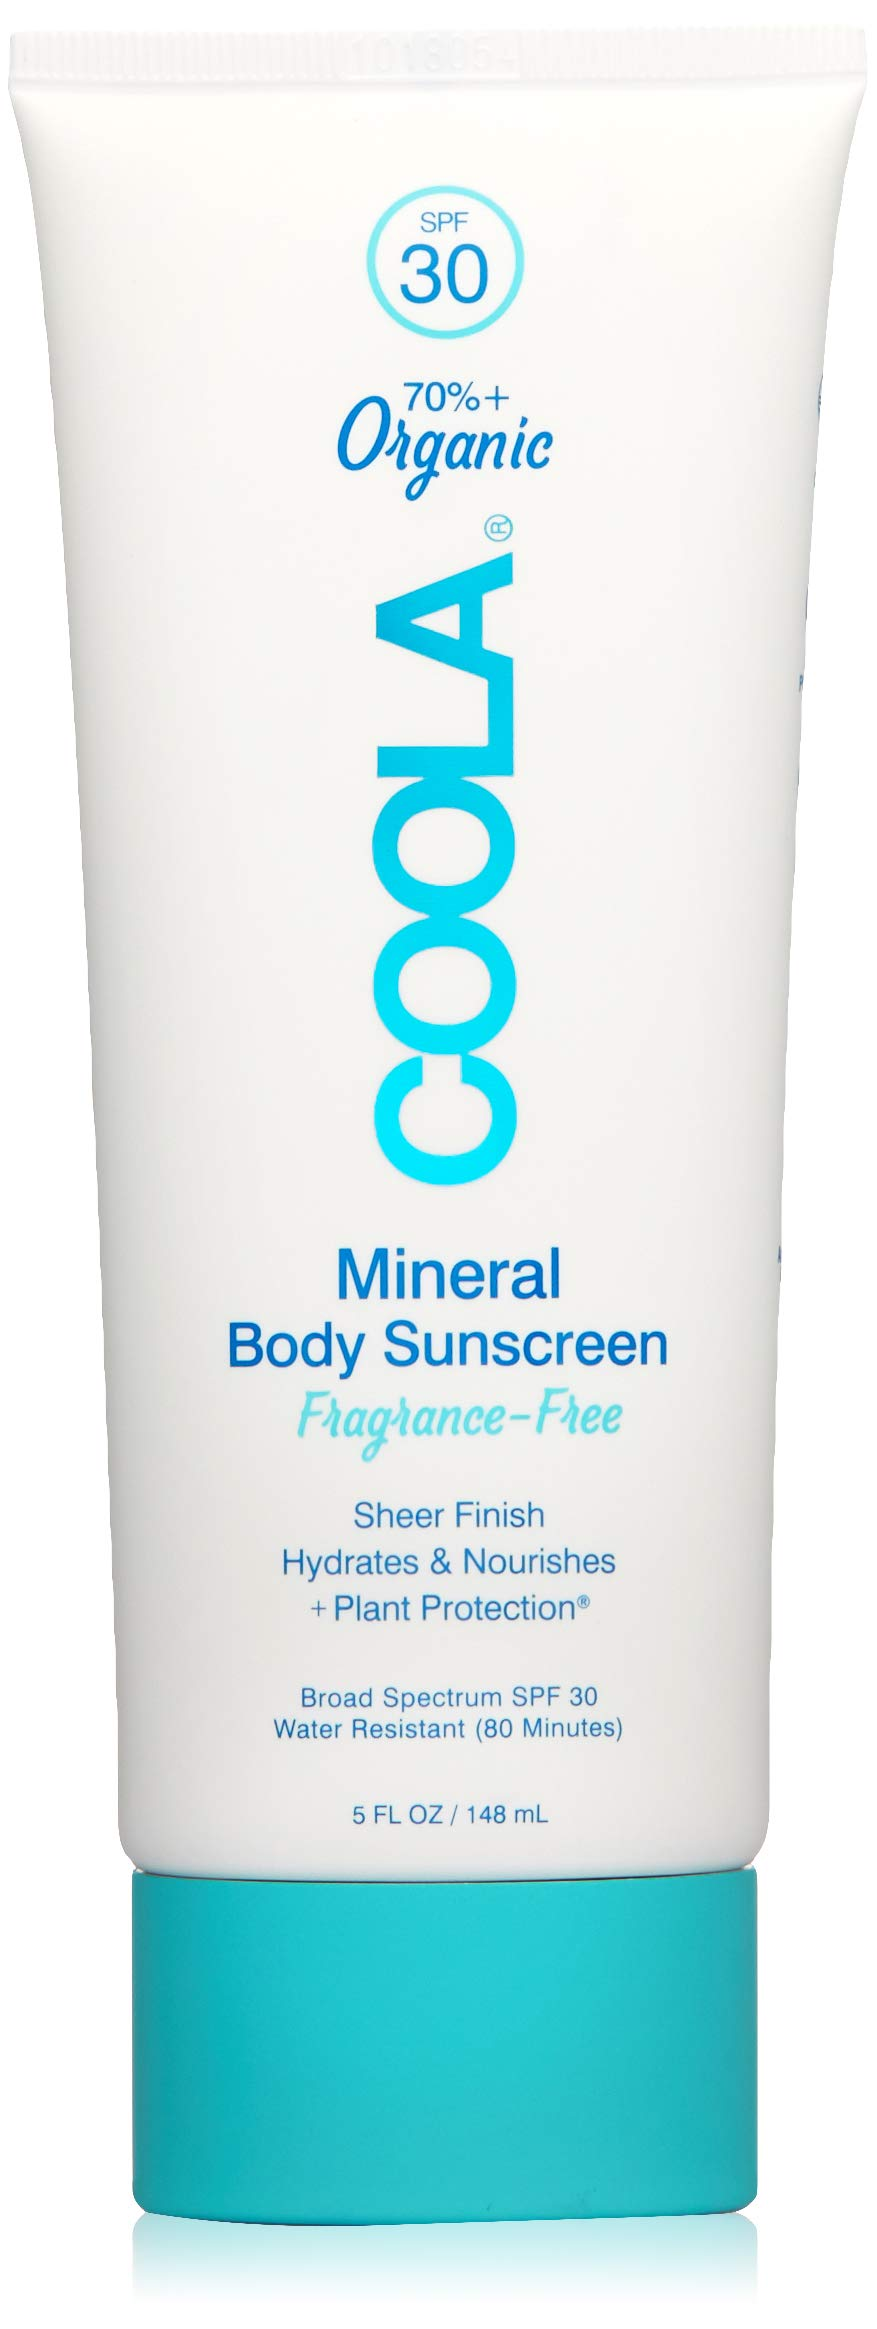 COOLA Organic Mineral Body Lotion | Broad Spectrum SPF 30 | Ultra-Hydrating | Reef Friendly | Sheer and Lightweight | Unscented  | Water Resistant by Coola Suncare